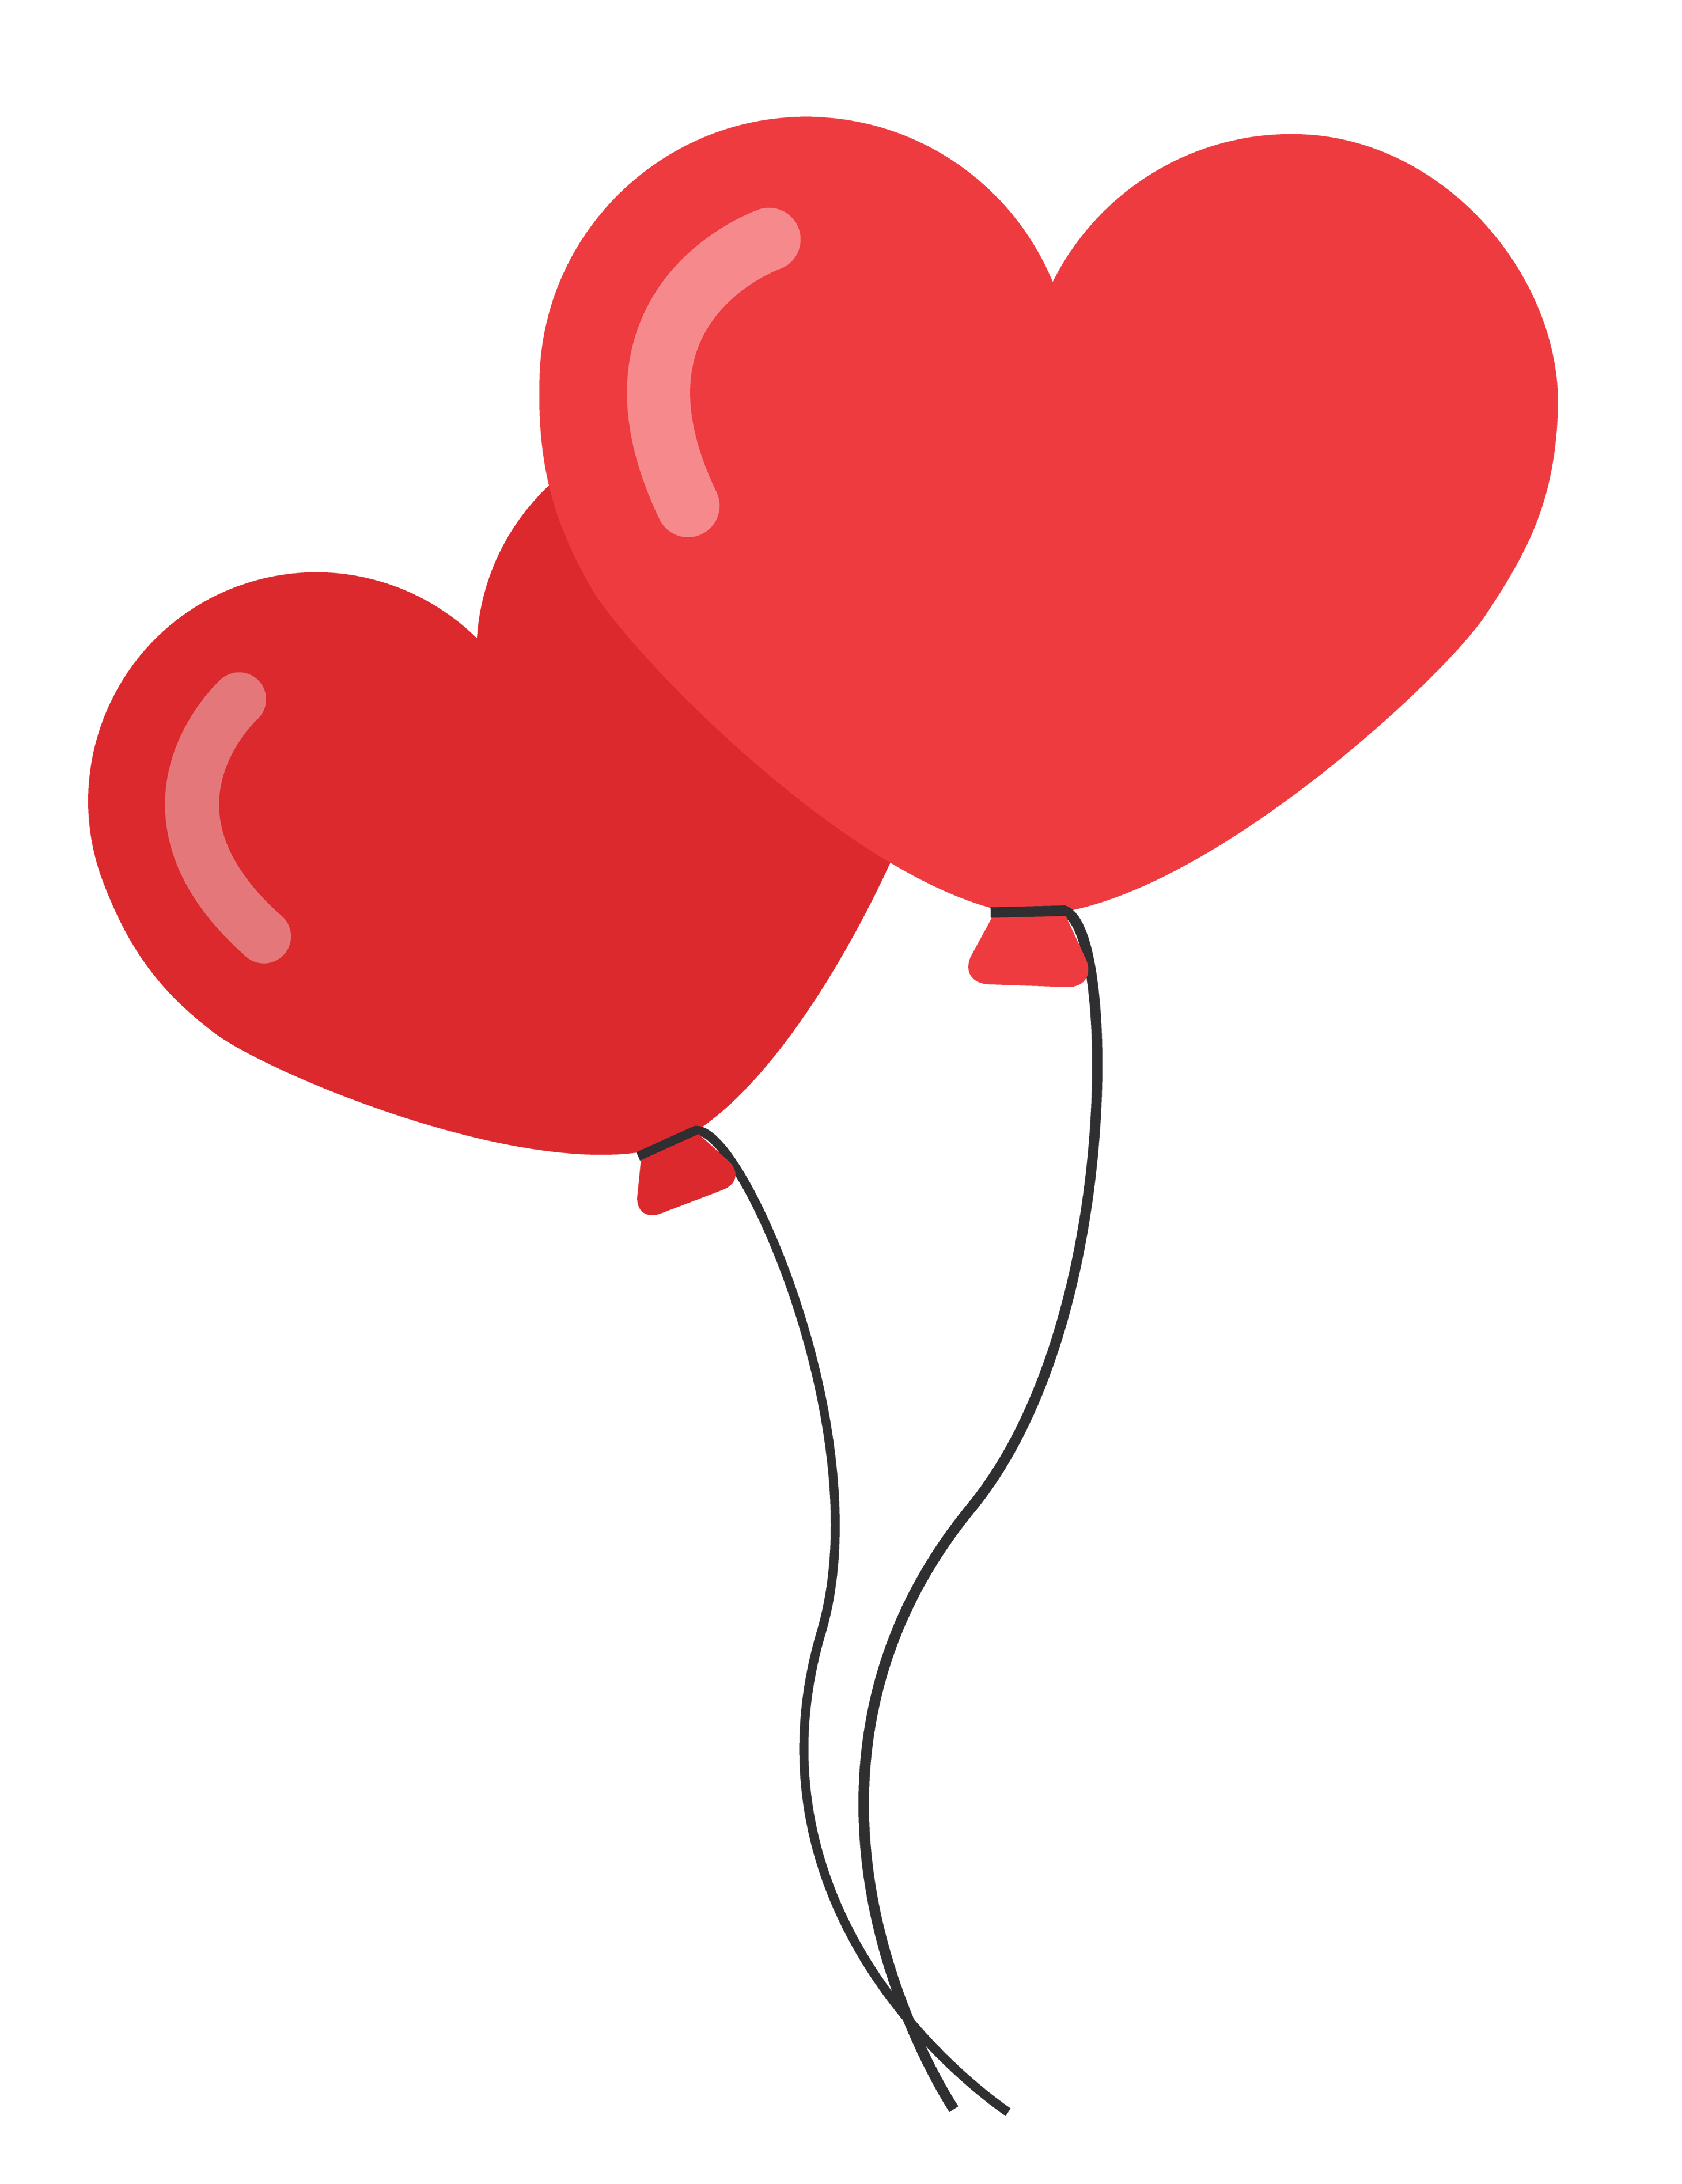 Heart Shaped Balloons PNG image - Romance PNG